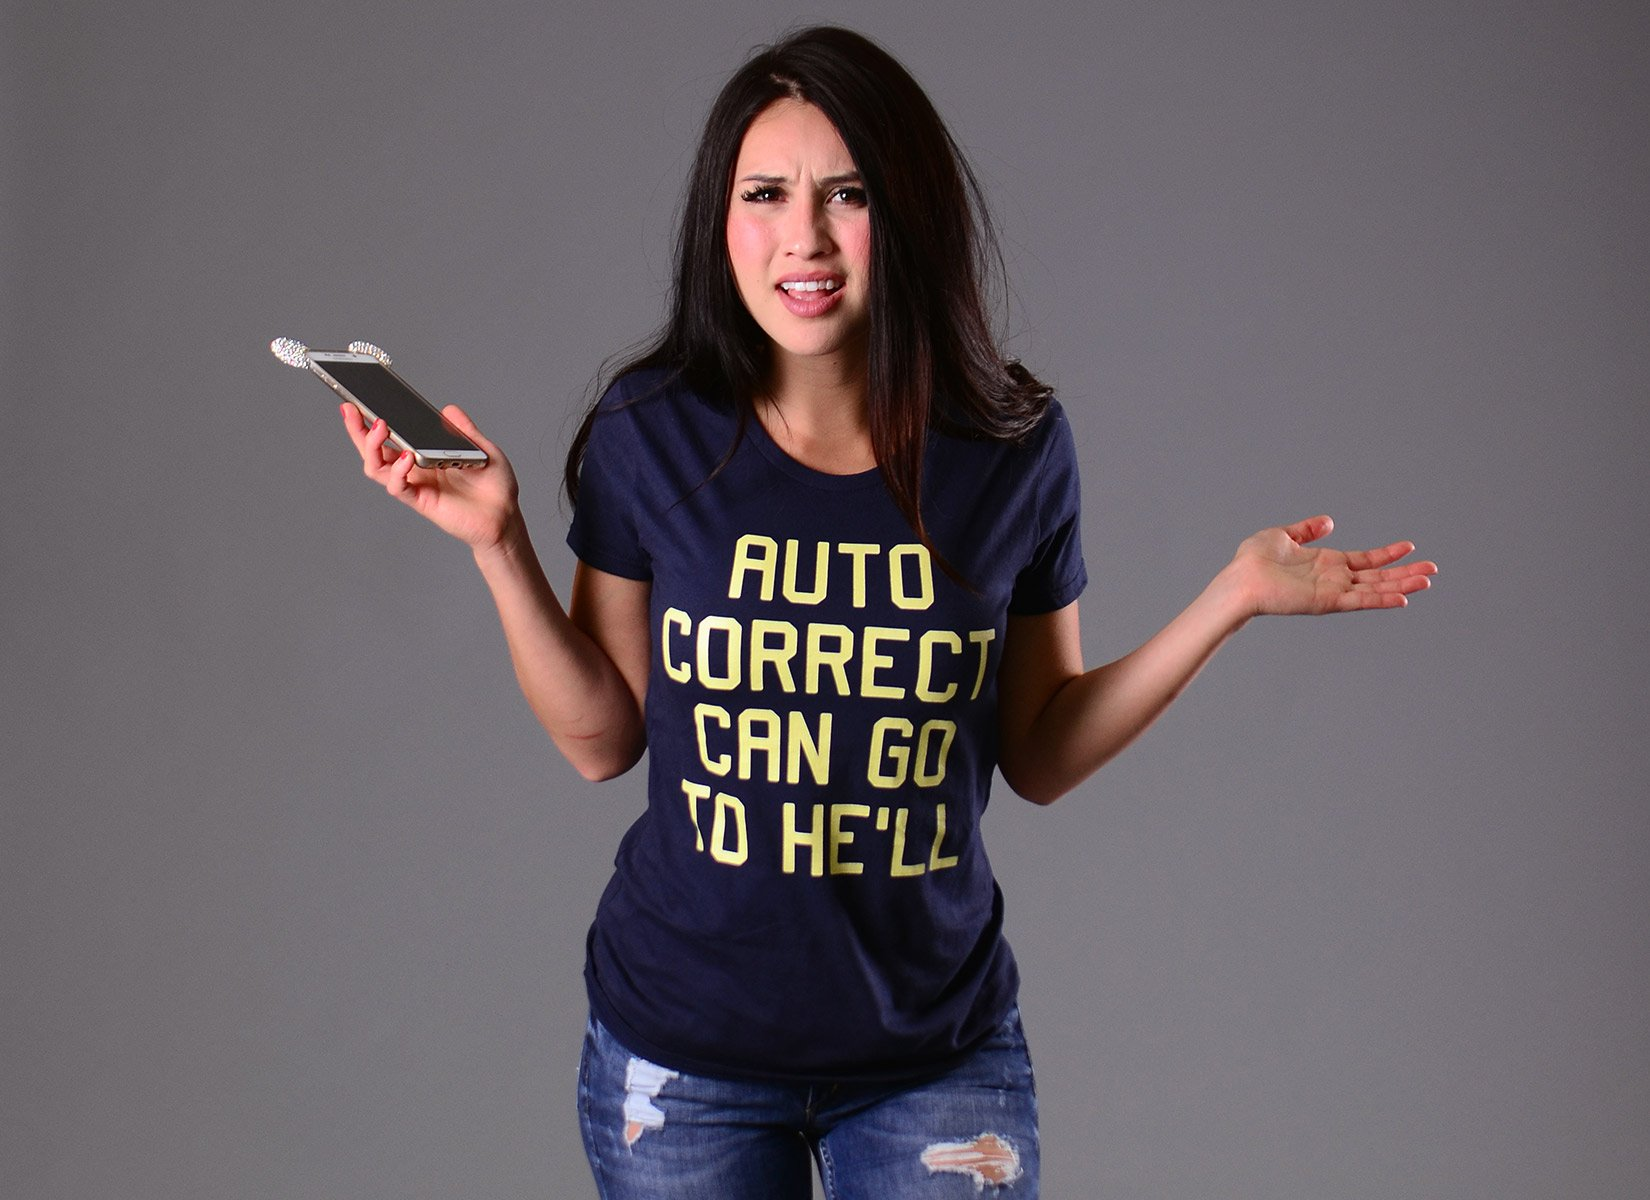 Auto Correct Can Go To He'll on Womens T-Shirt